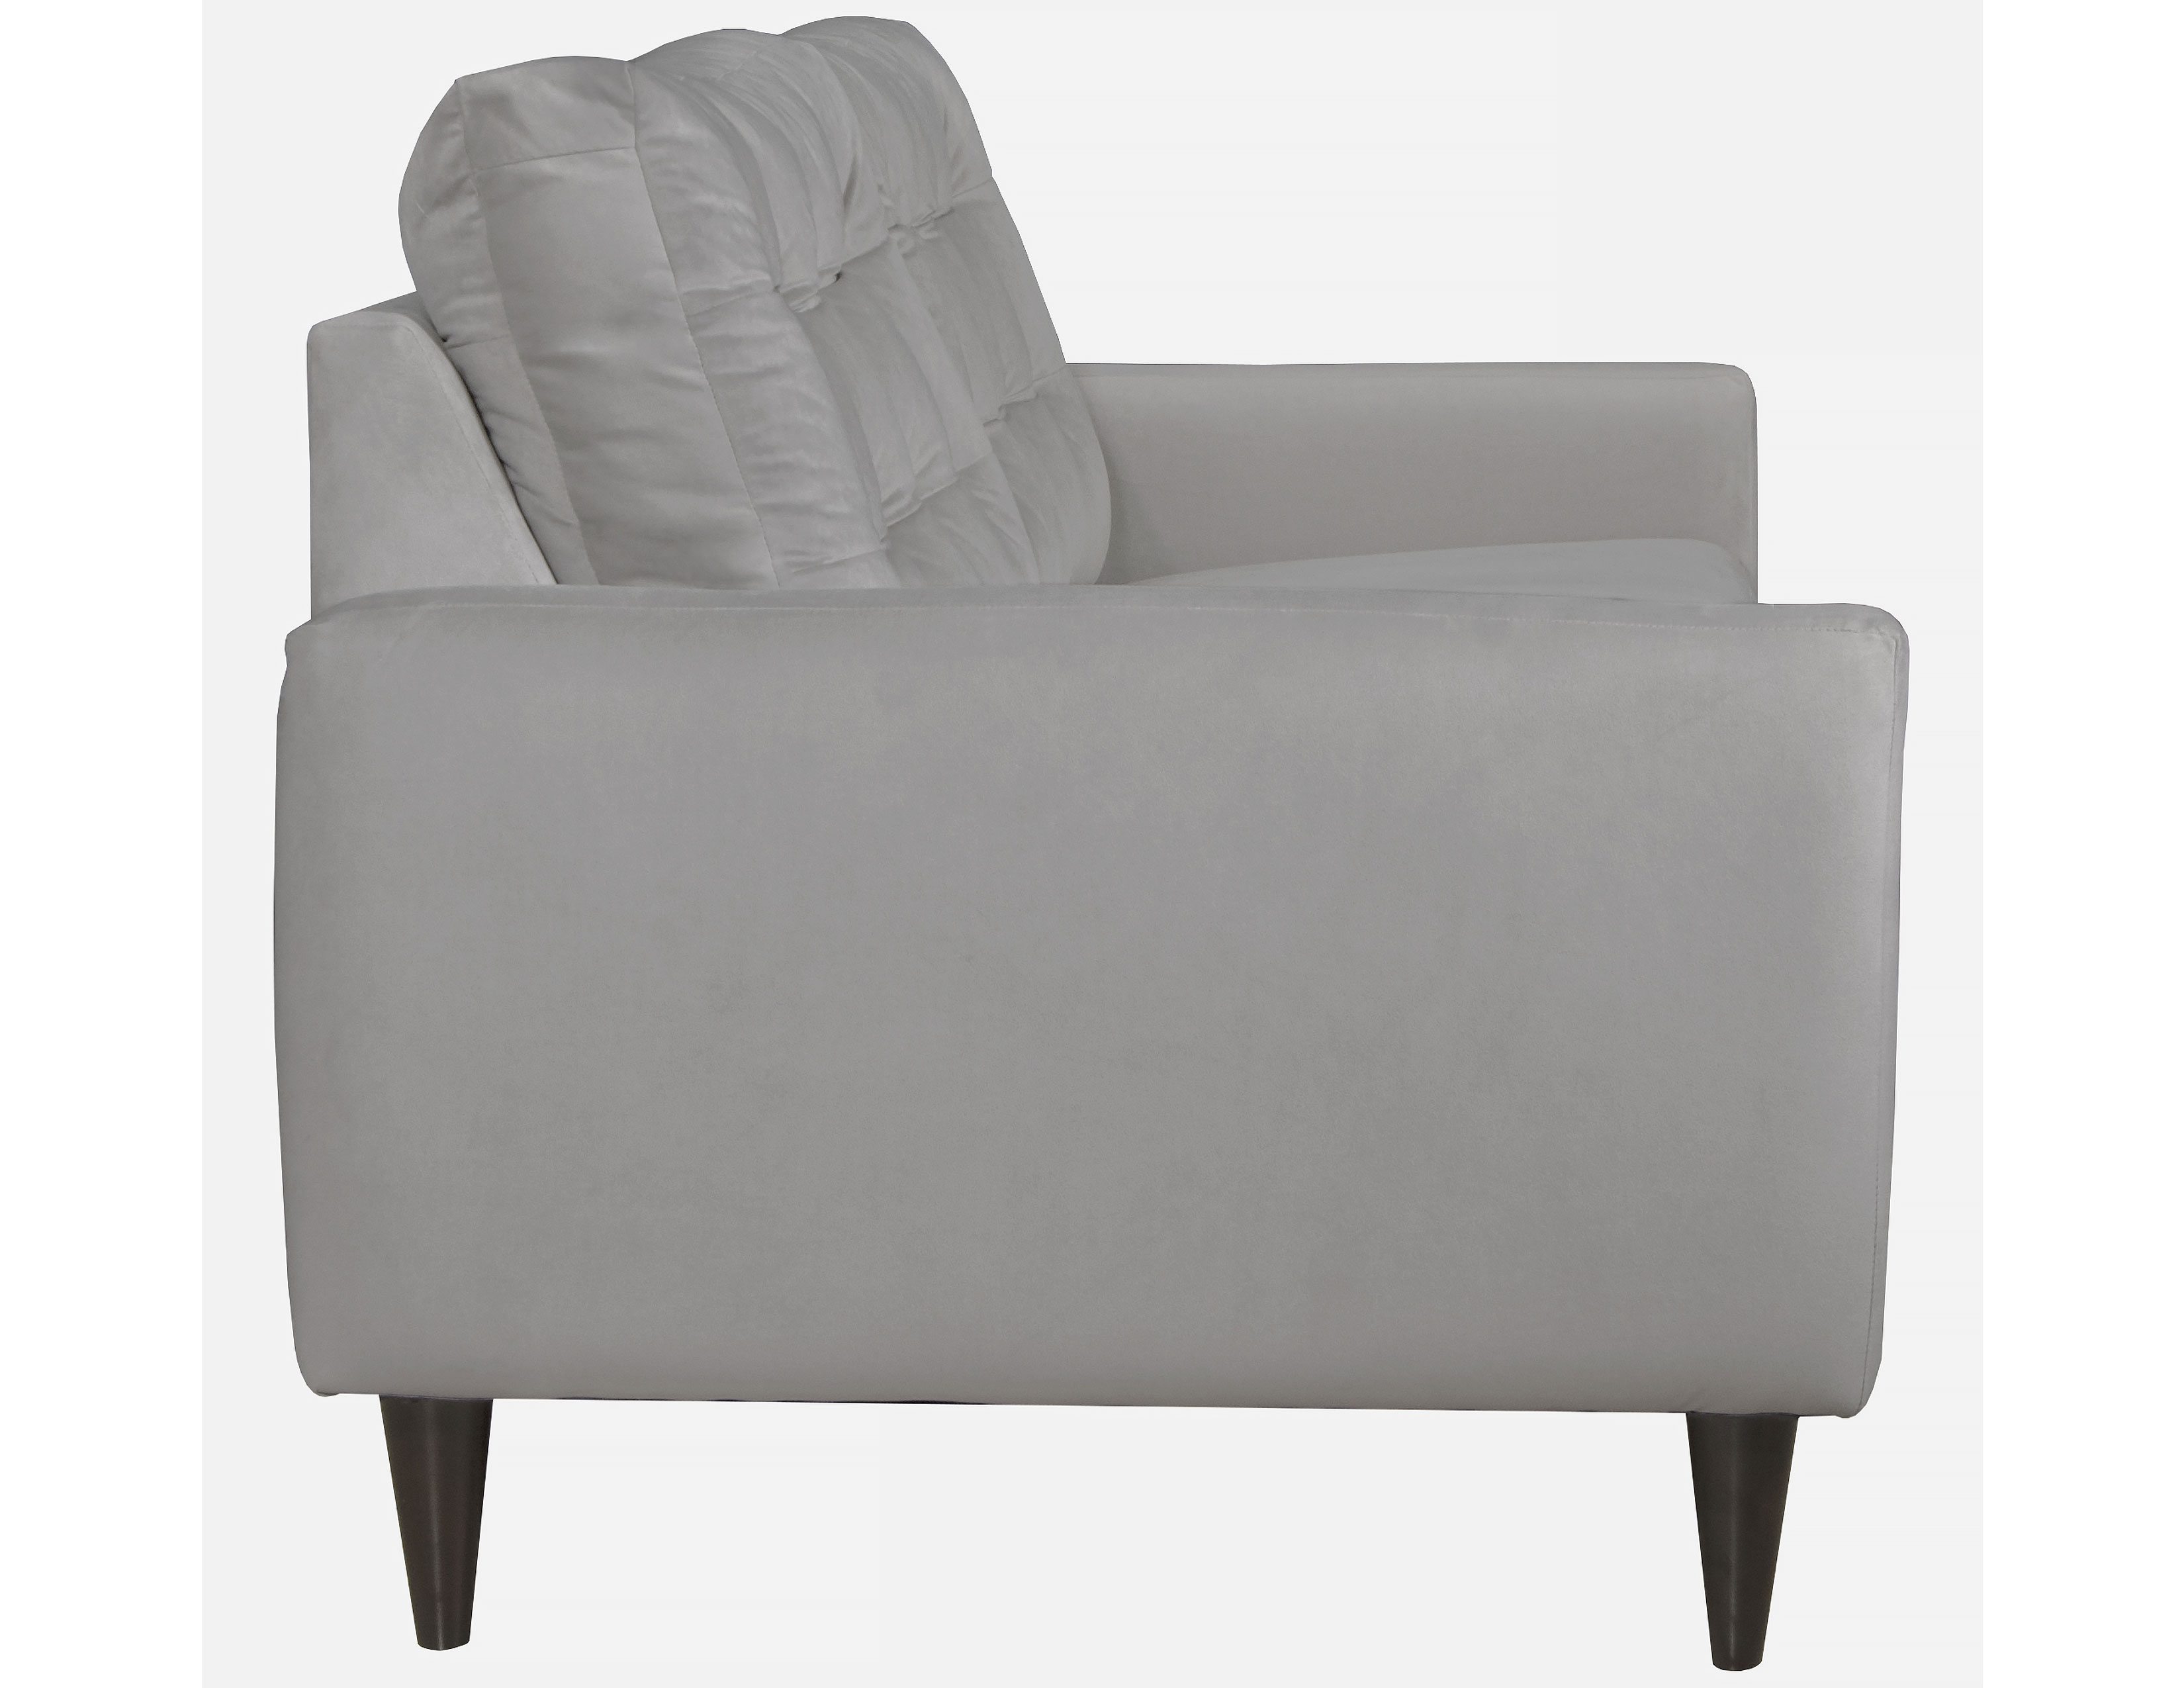 Wondrous Haley 87 Sofa In Dove Live Smart Fabric Sofas And Camellatalisay Diy Chair Ideas Camellatalisaycom